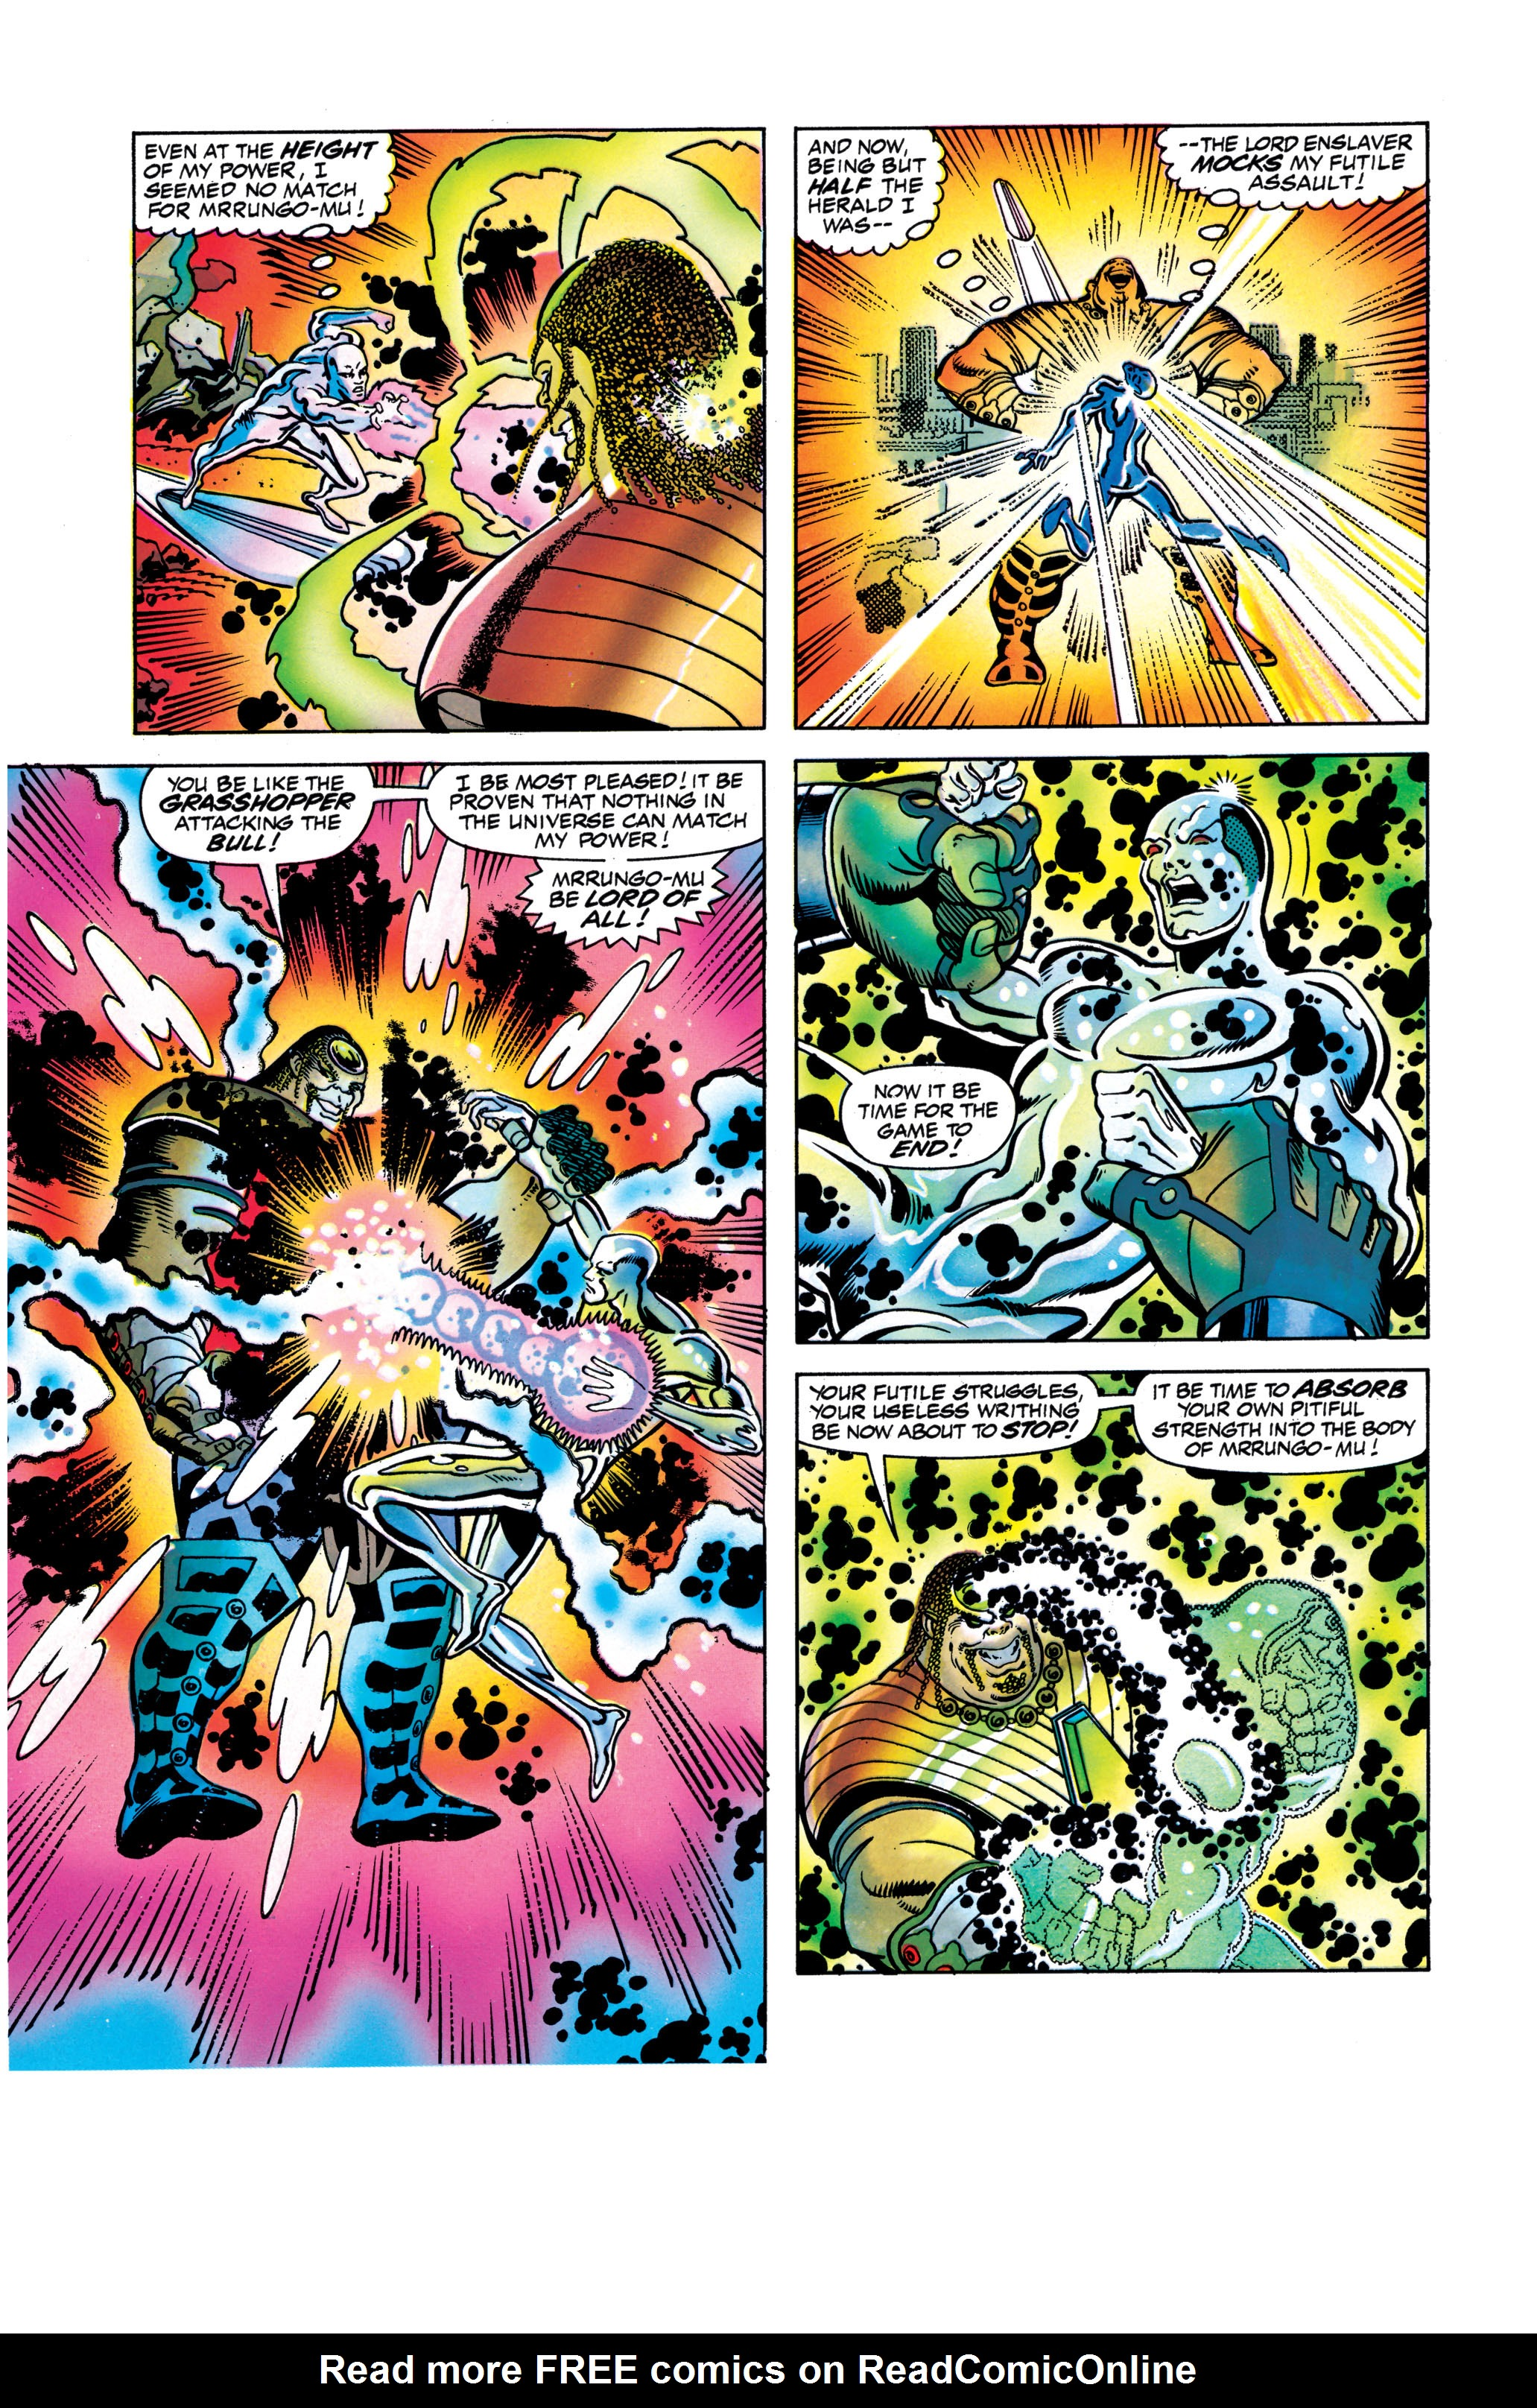 Read online Silver Surfer: Parable comic -  Issue # TPB - 117